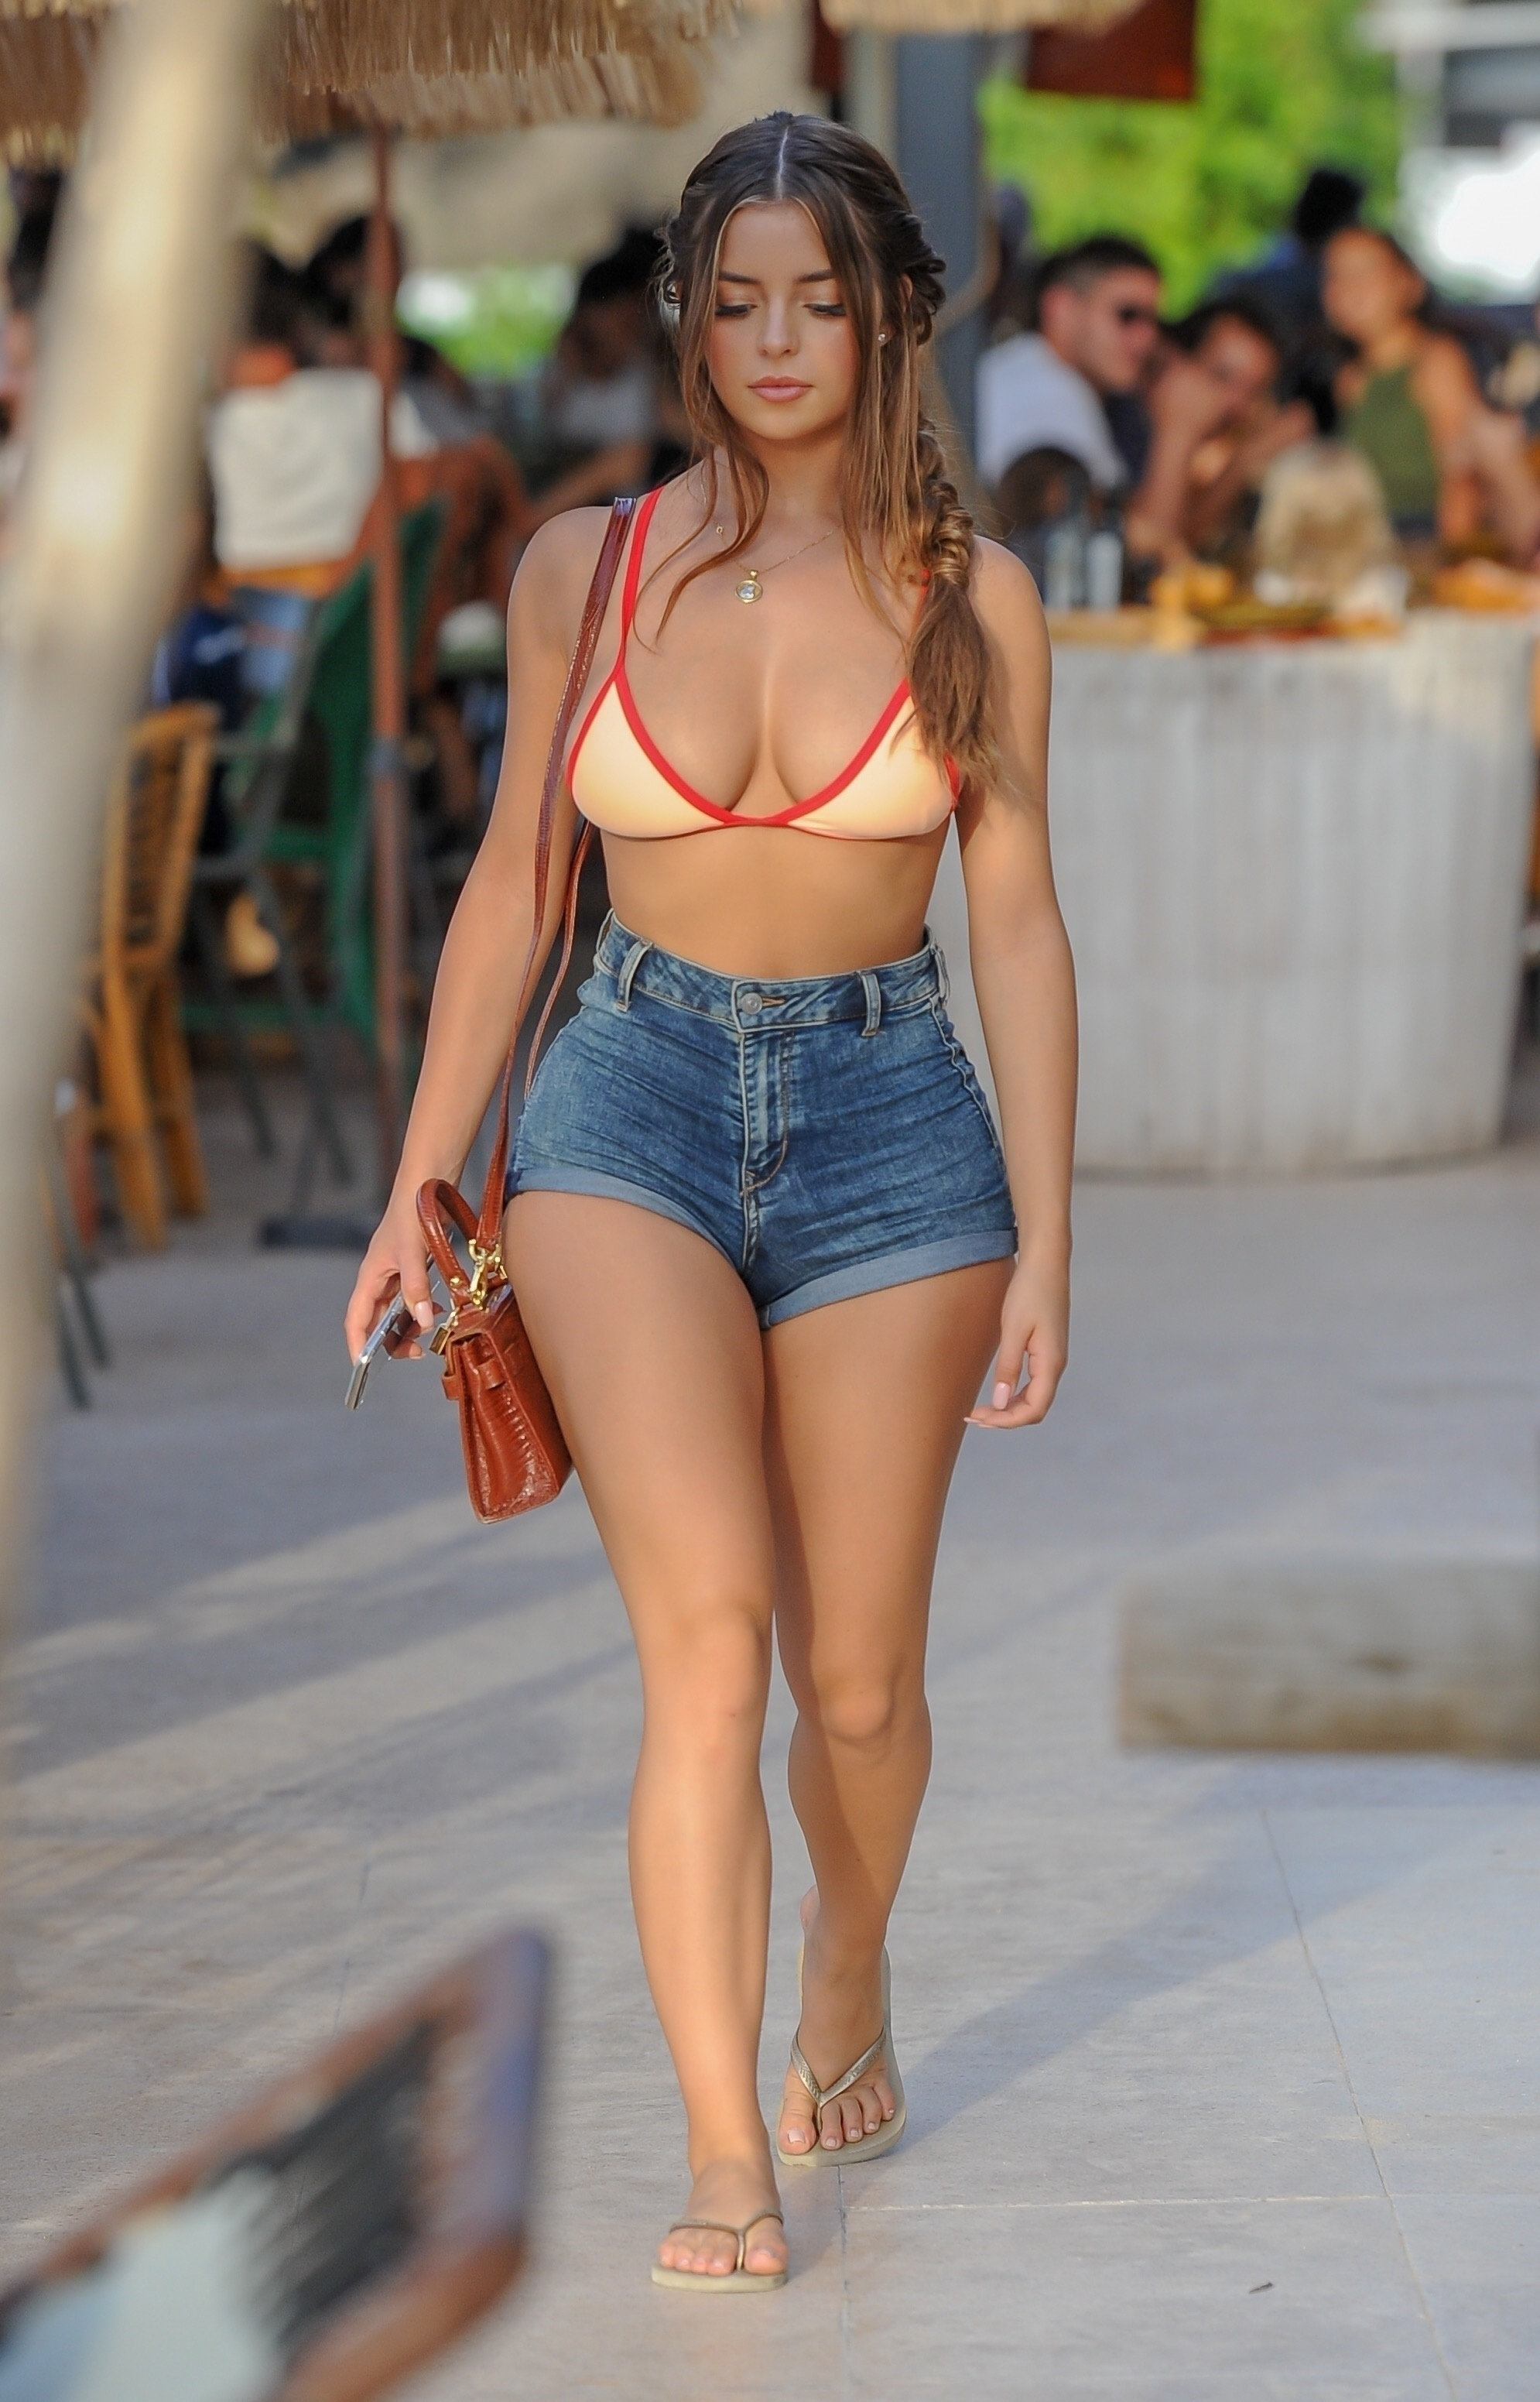 Feet Demi Rose naked (44 foto and video), Topless, Hot, Instagram, swimsuit 2020